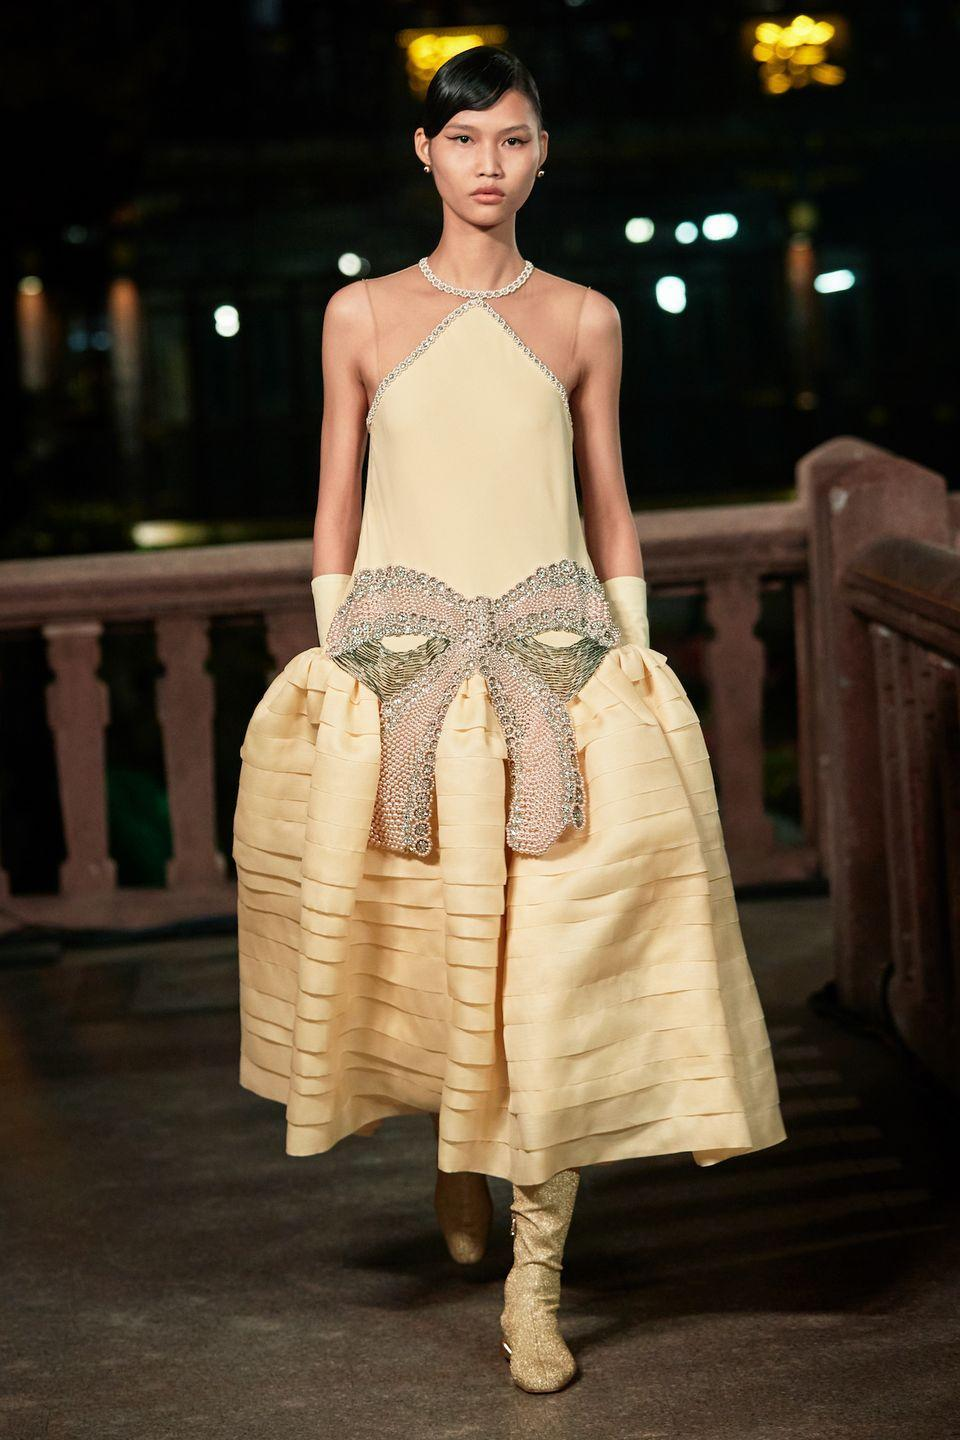 <p>Escapism played a major role in Bruno Sialelli's spring 2021 collection. Not only did the designer present at Shanghai's Yu Garden, a picturesque national landmark built in the 16th century, he also highlighted the prevalent styles of the 1920s—the decade of razzle dazzle. This journey to the past, however, was just the starting point; he took the motifs from the venue (exuberant floral prints and interplay of bright and dark colors) and the time period (drop waists, flutter sleeves, and the decorative signatures of furniture designers Armand Albert Rateau and Jean Dunand) and made them new. Think: Tiered, hoop skirts and opera coats with shawl collars paired with flat leather or sequined boots; and embroidered silk chiffon dresses.—<em>Barry Samaha</em></p>